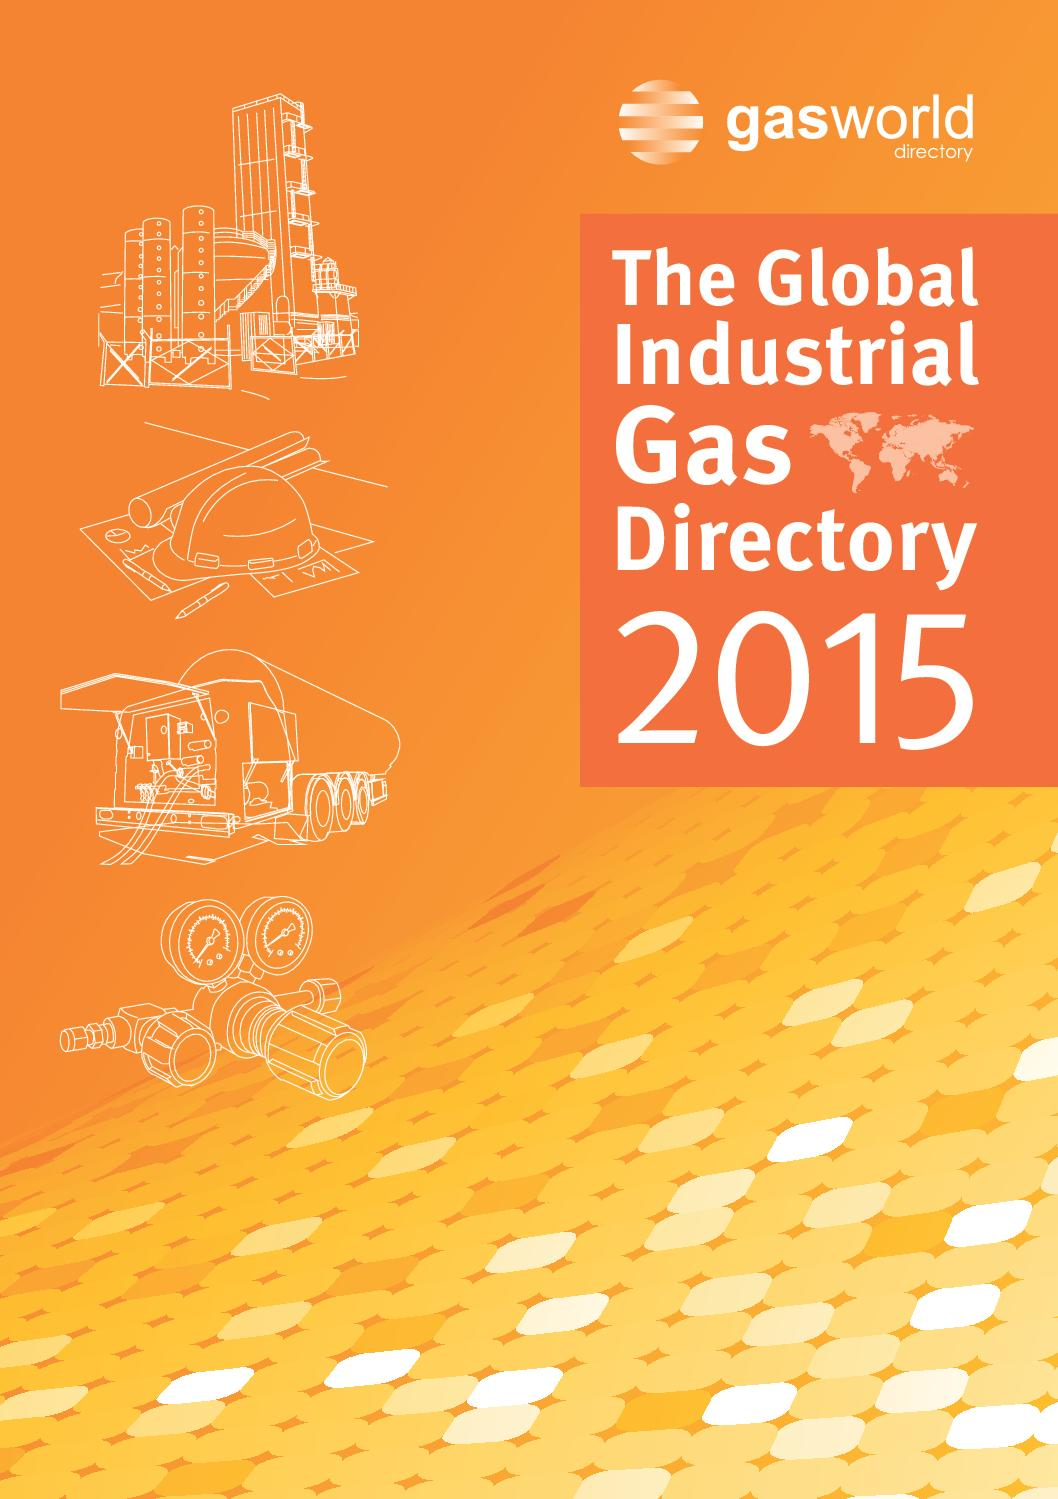 gasworld Global Industrial Gas Directory 2015 by gasworld